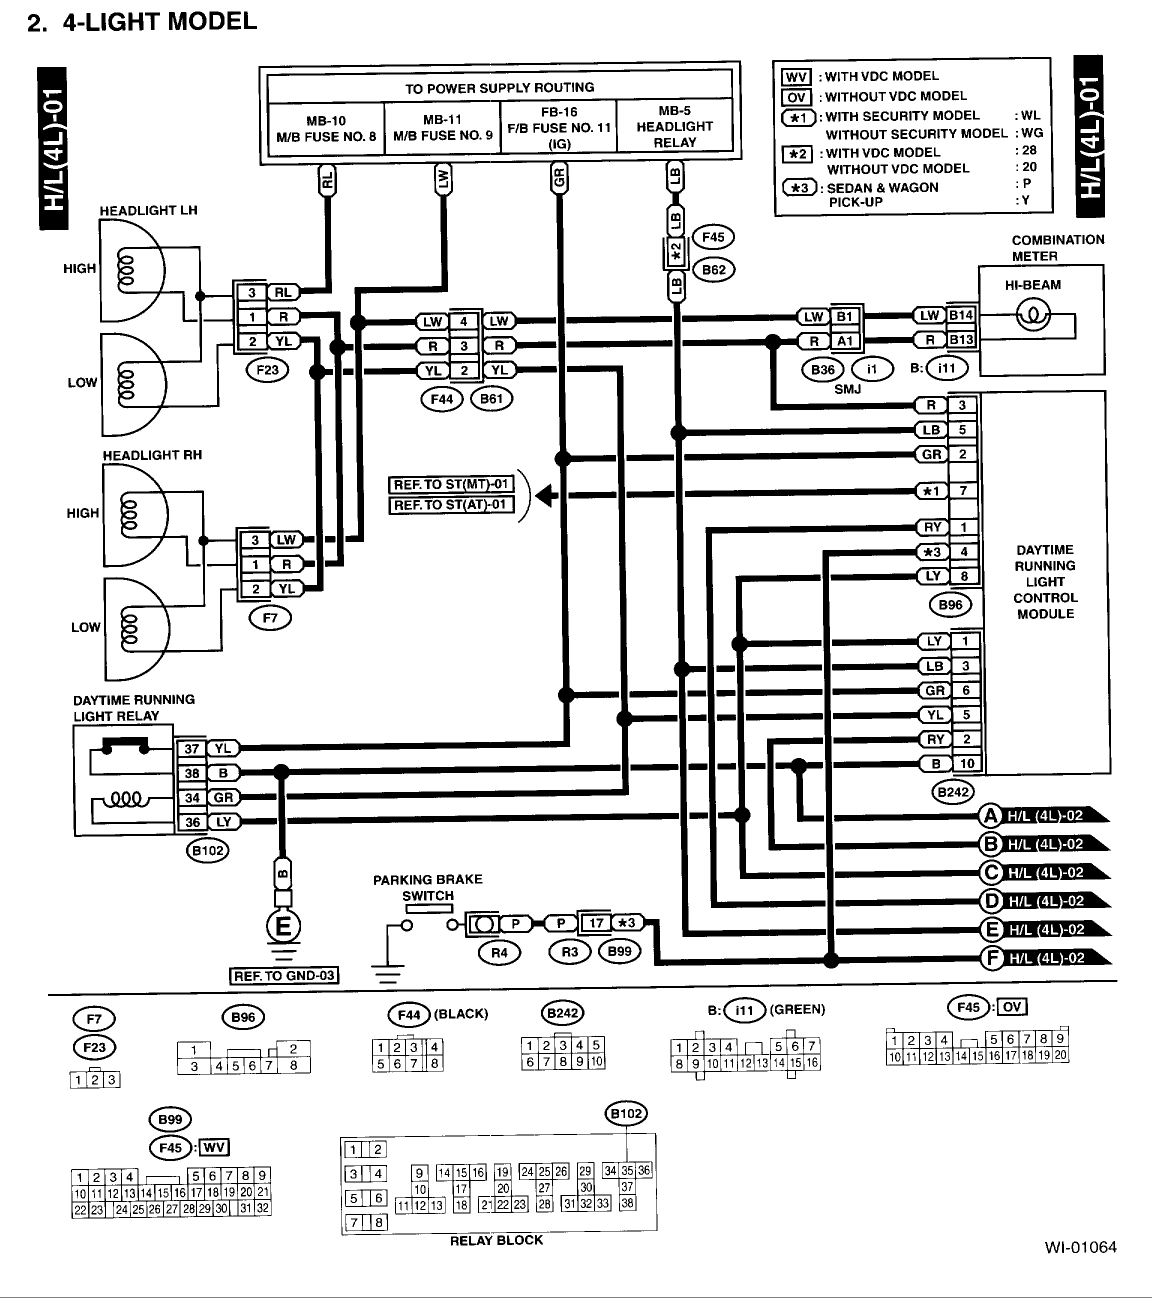 hight resolution of subaru tribeca trailer wiring harness wiring diagram basic 2006 subaru tribeca trailer wiring moreover subaru outback